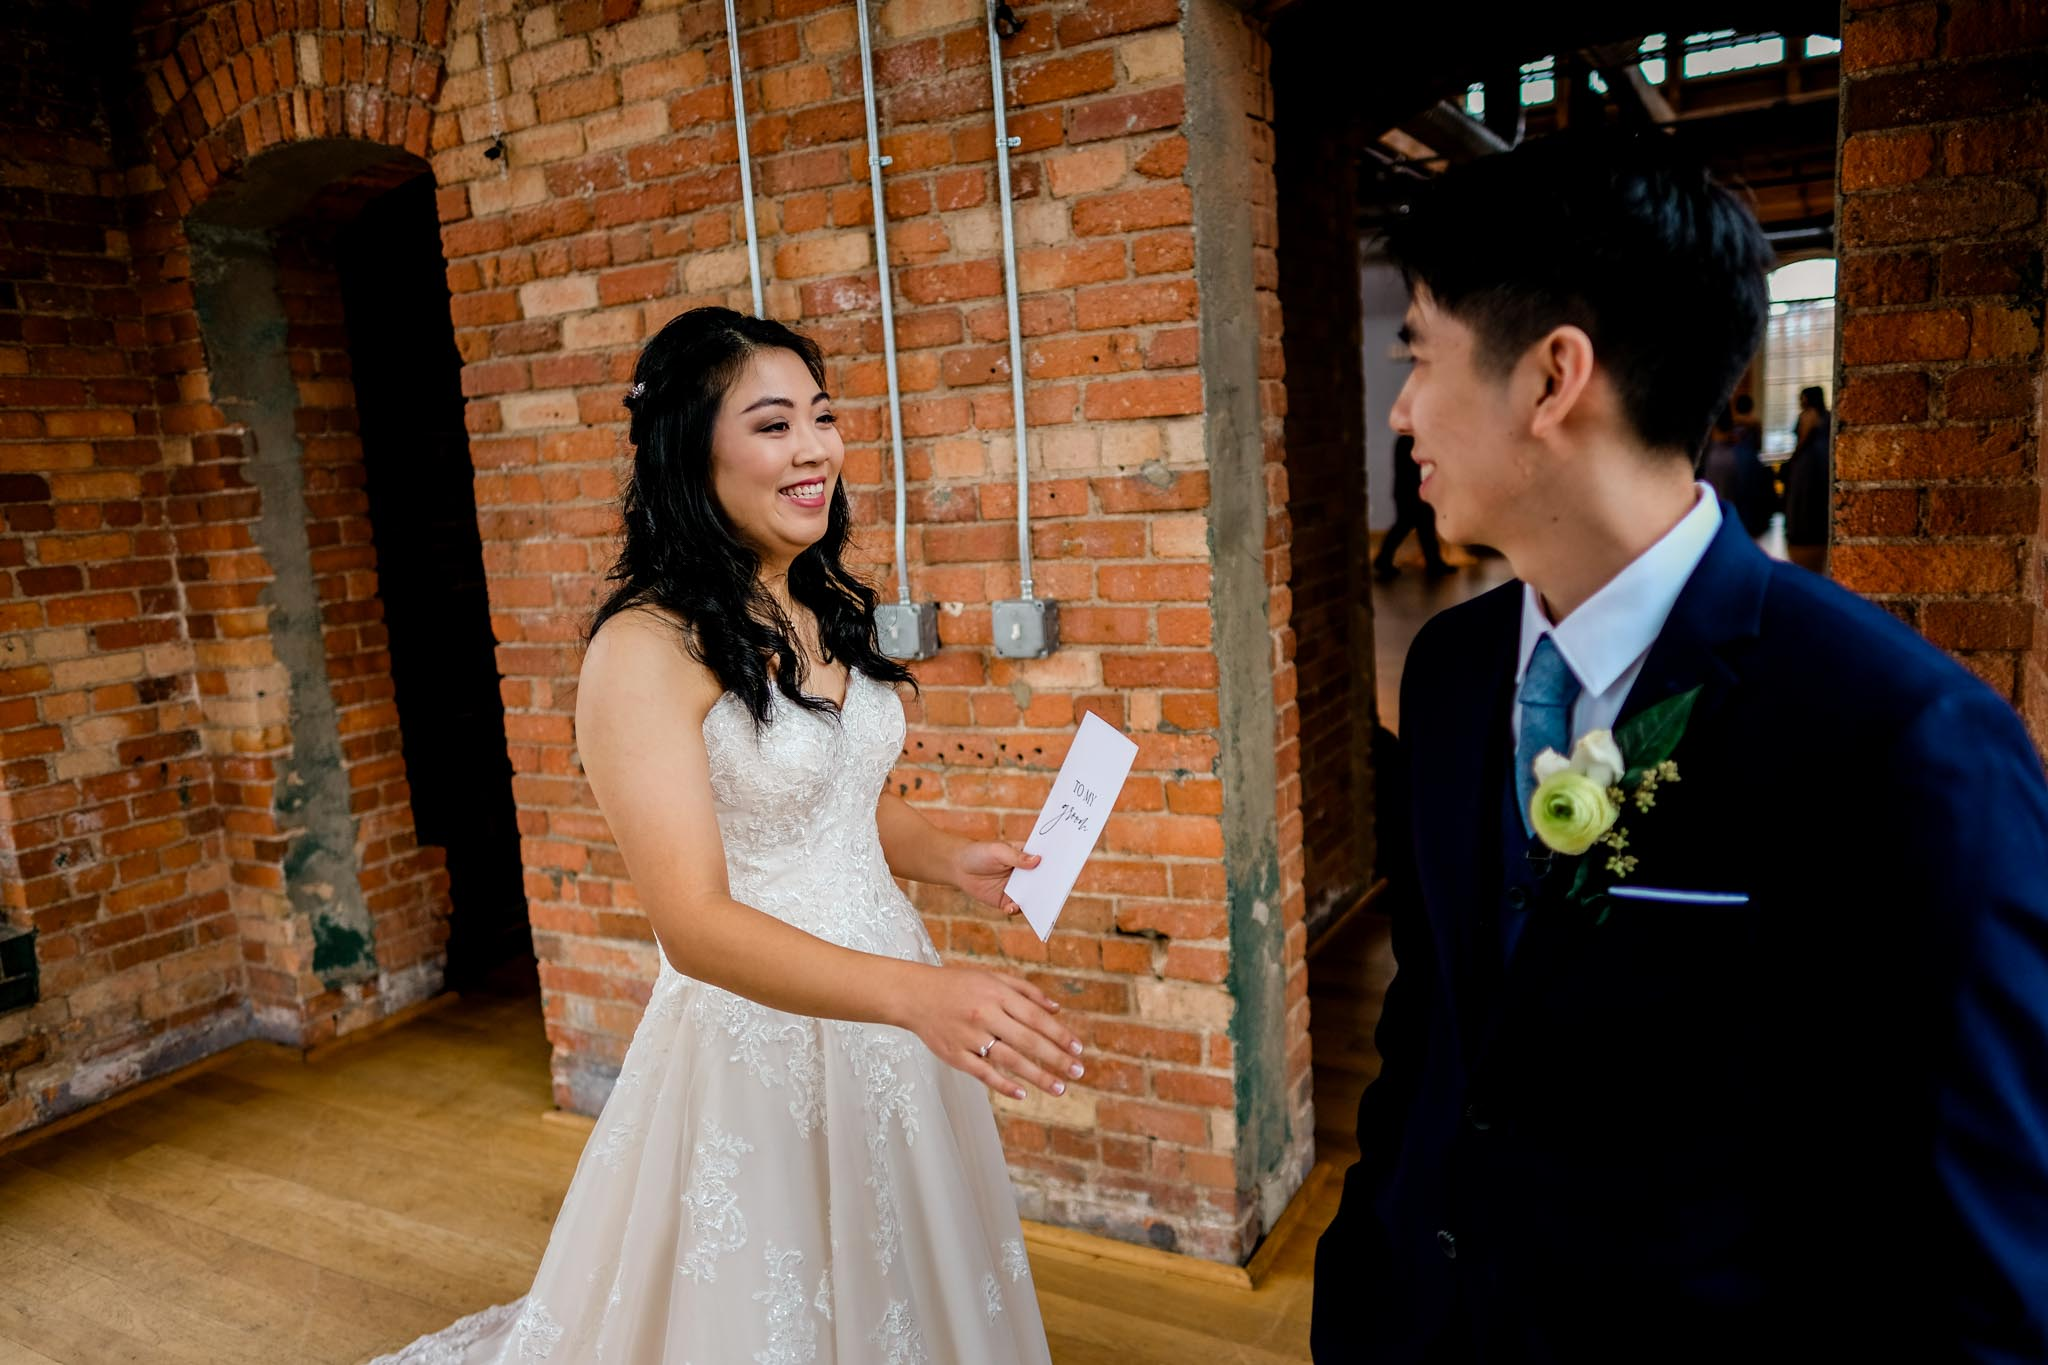 Bride and groom seeing each other for first time | Durham Wedding Photographer | The Cotton Room | By G. Lin Photography